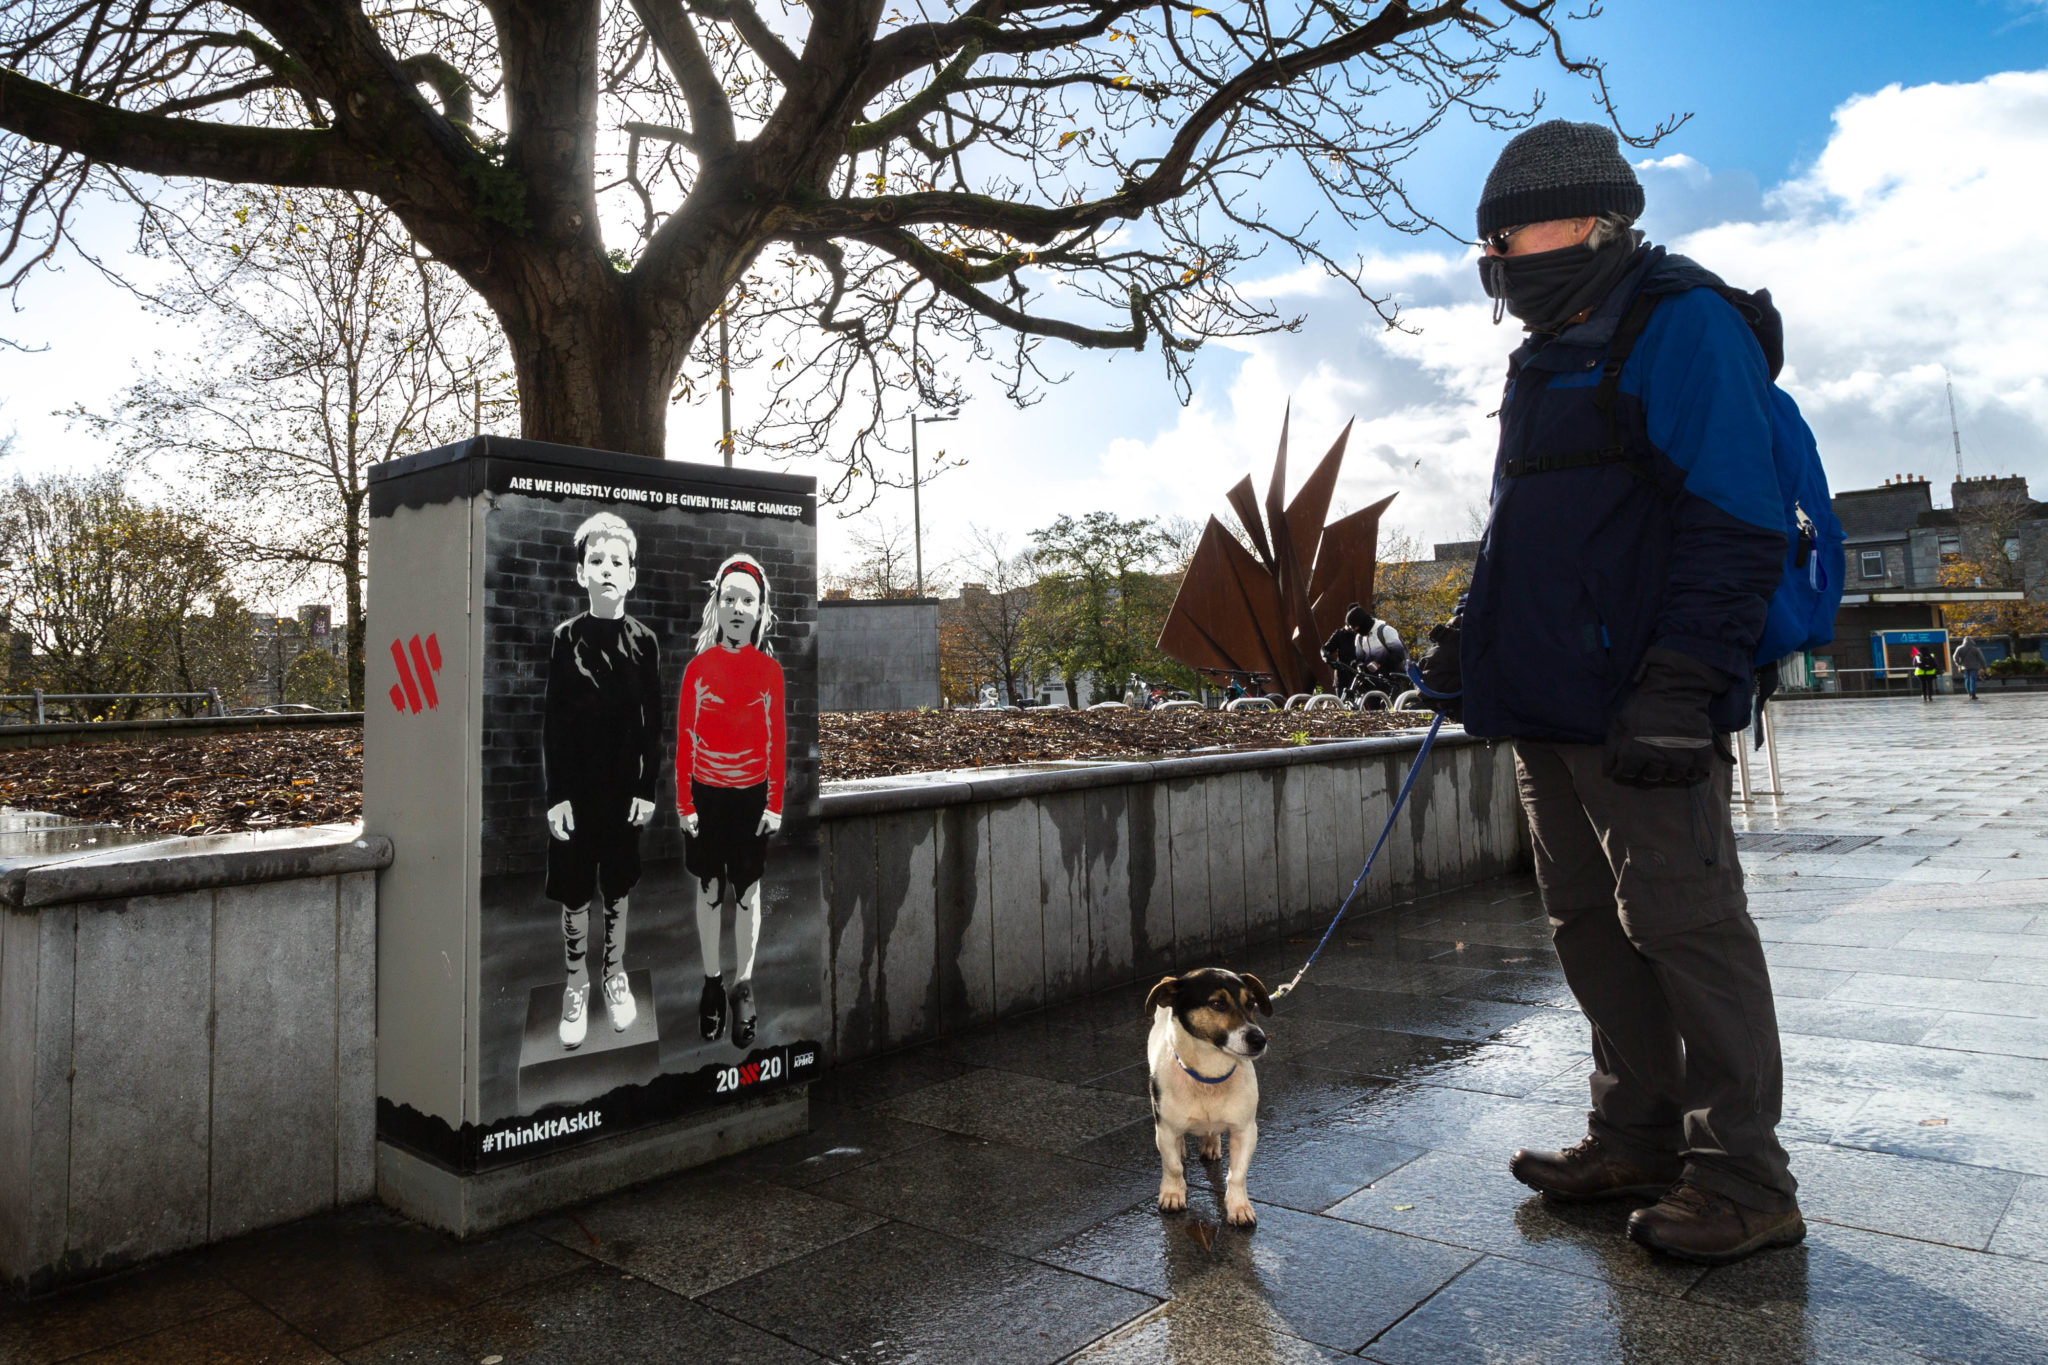 A man and dog pass the mural in Eyre Square.